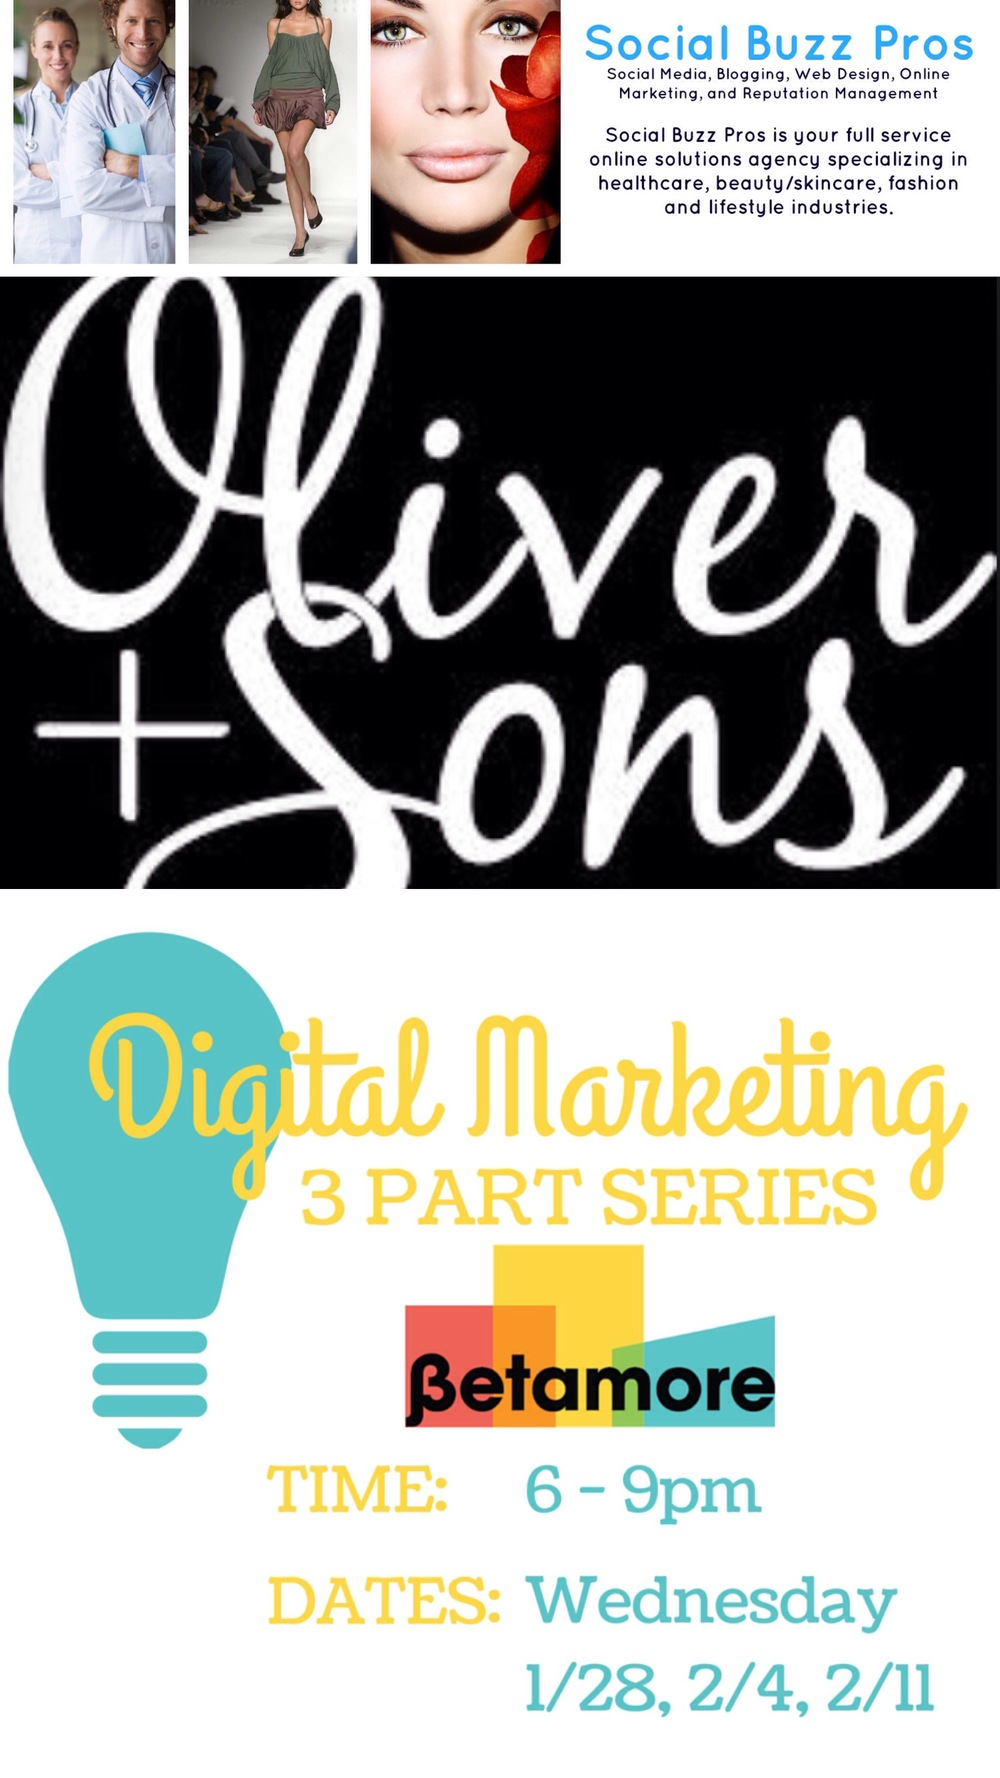 Social Buzz Pros and Oliver + Sons Workshop Offerings at Betamore